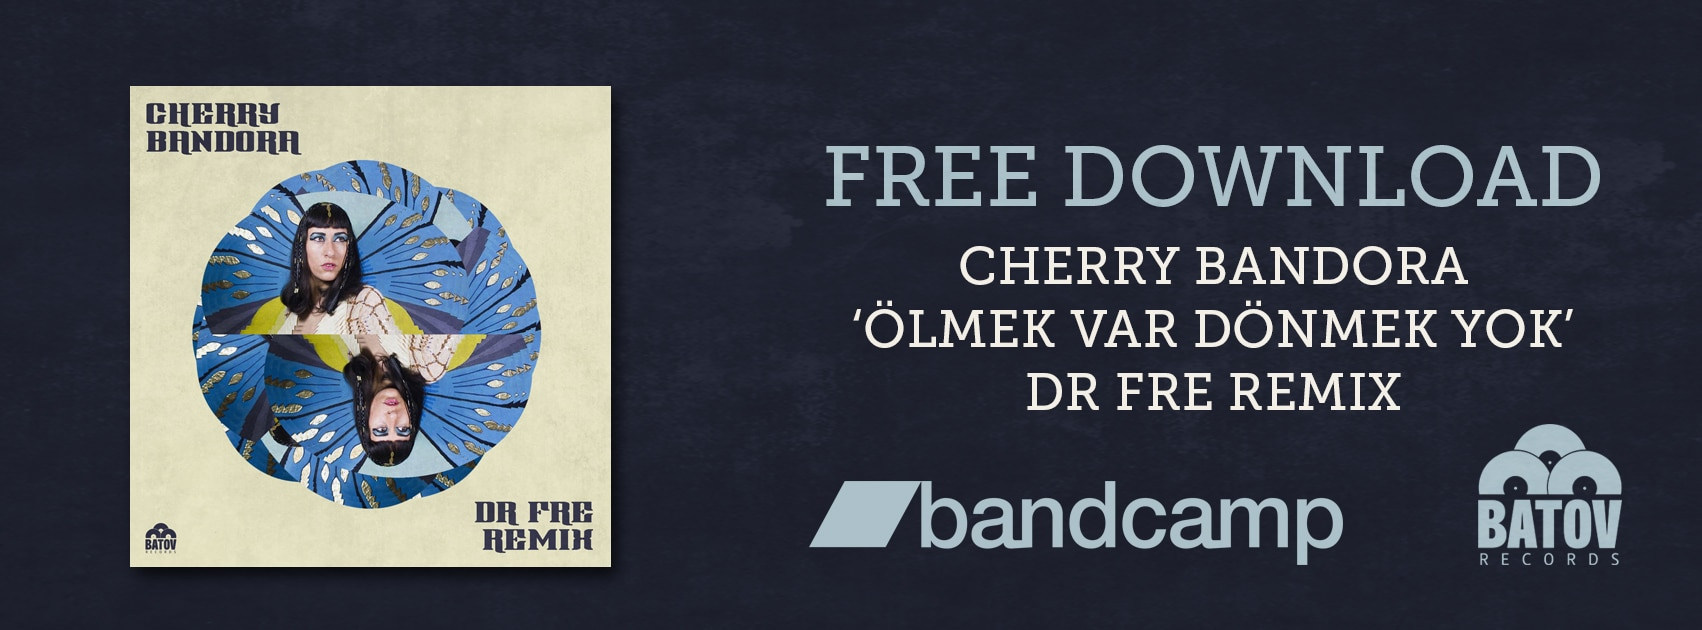 Dr Fre remix free download